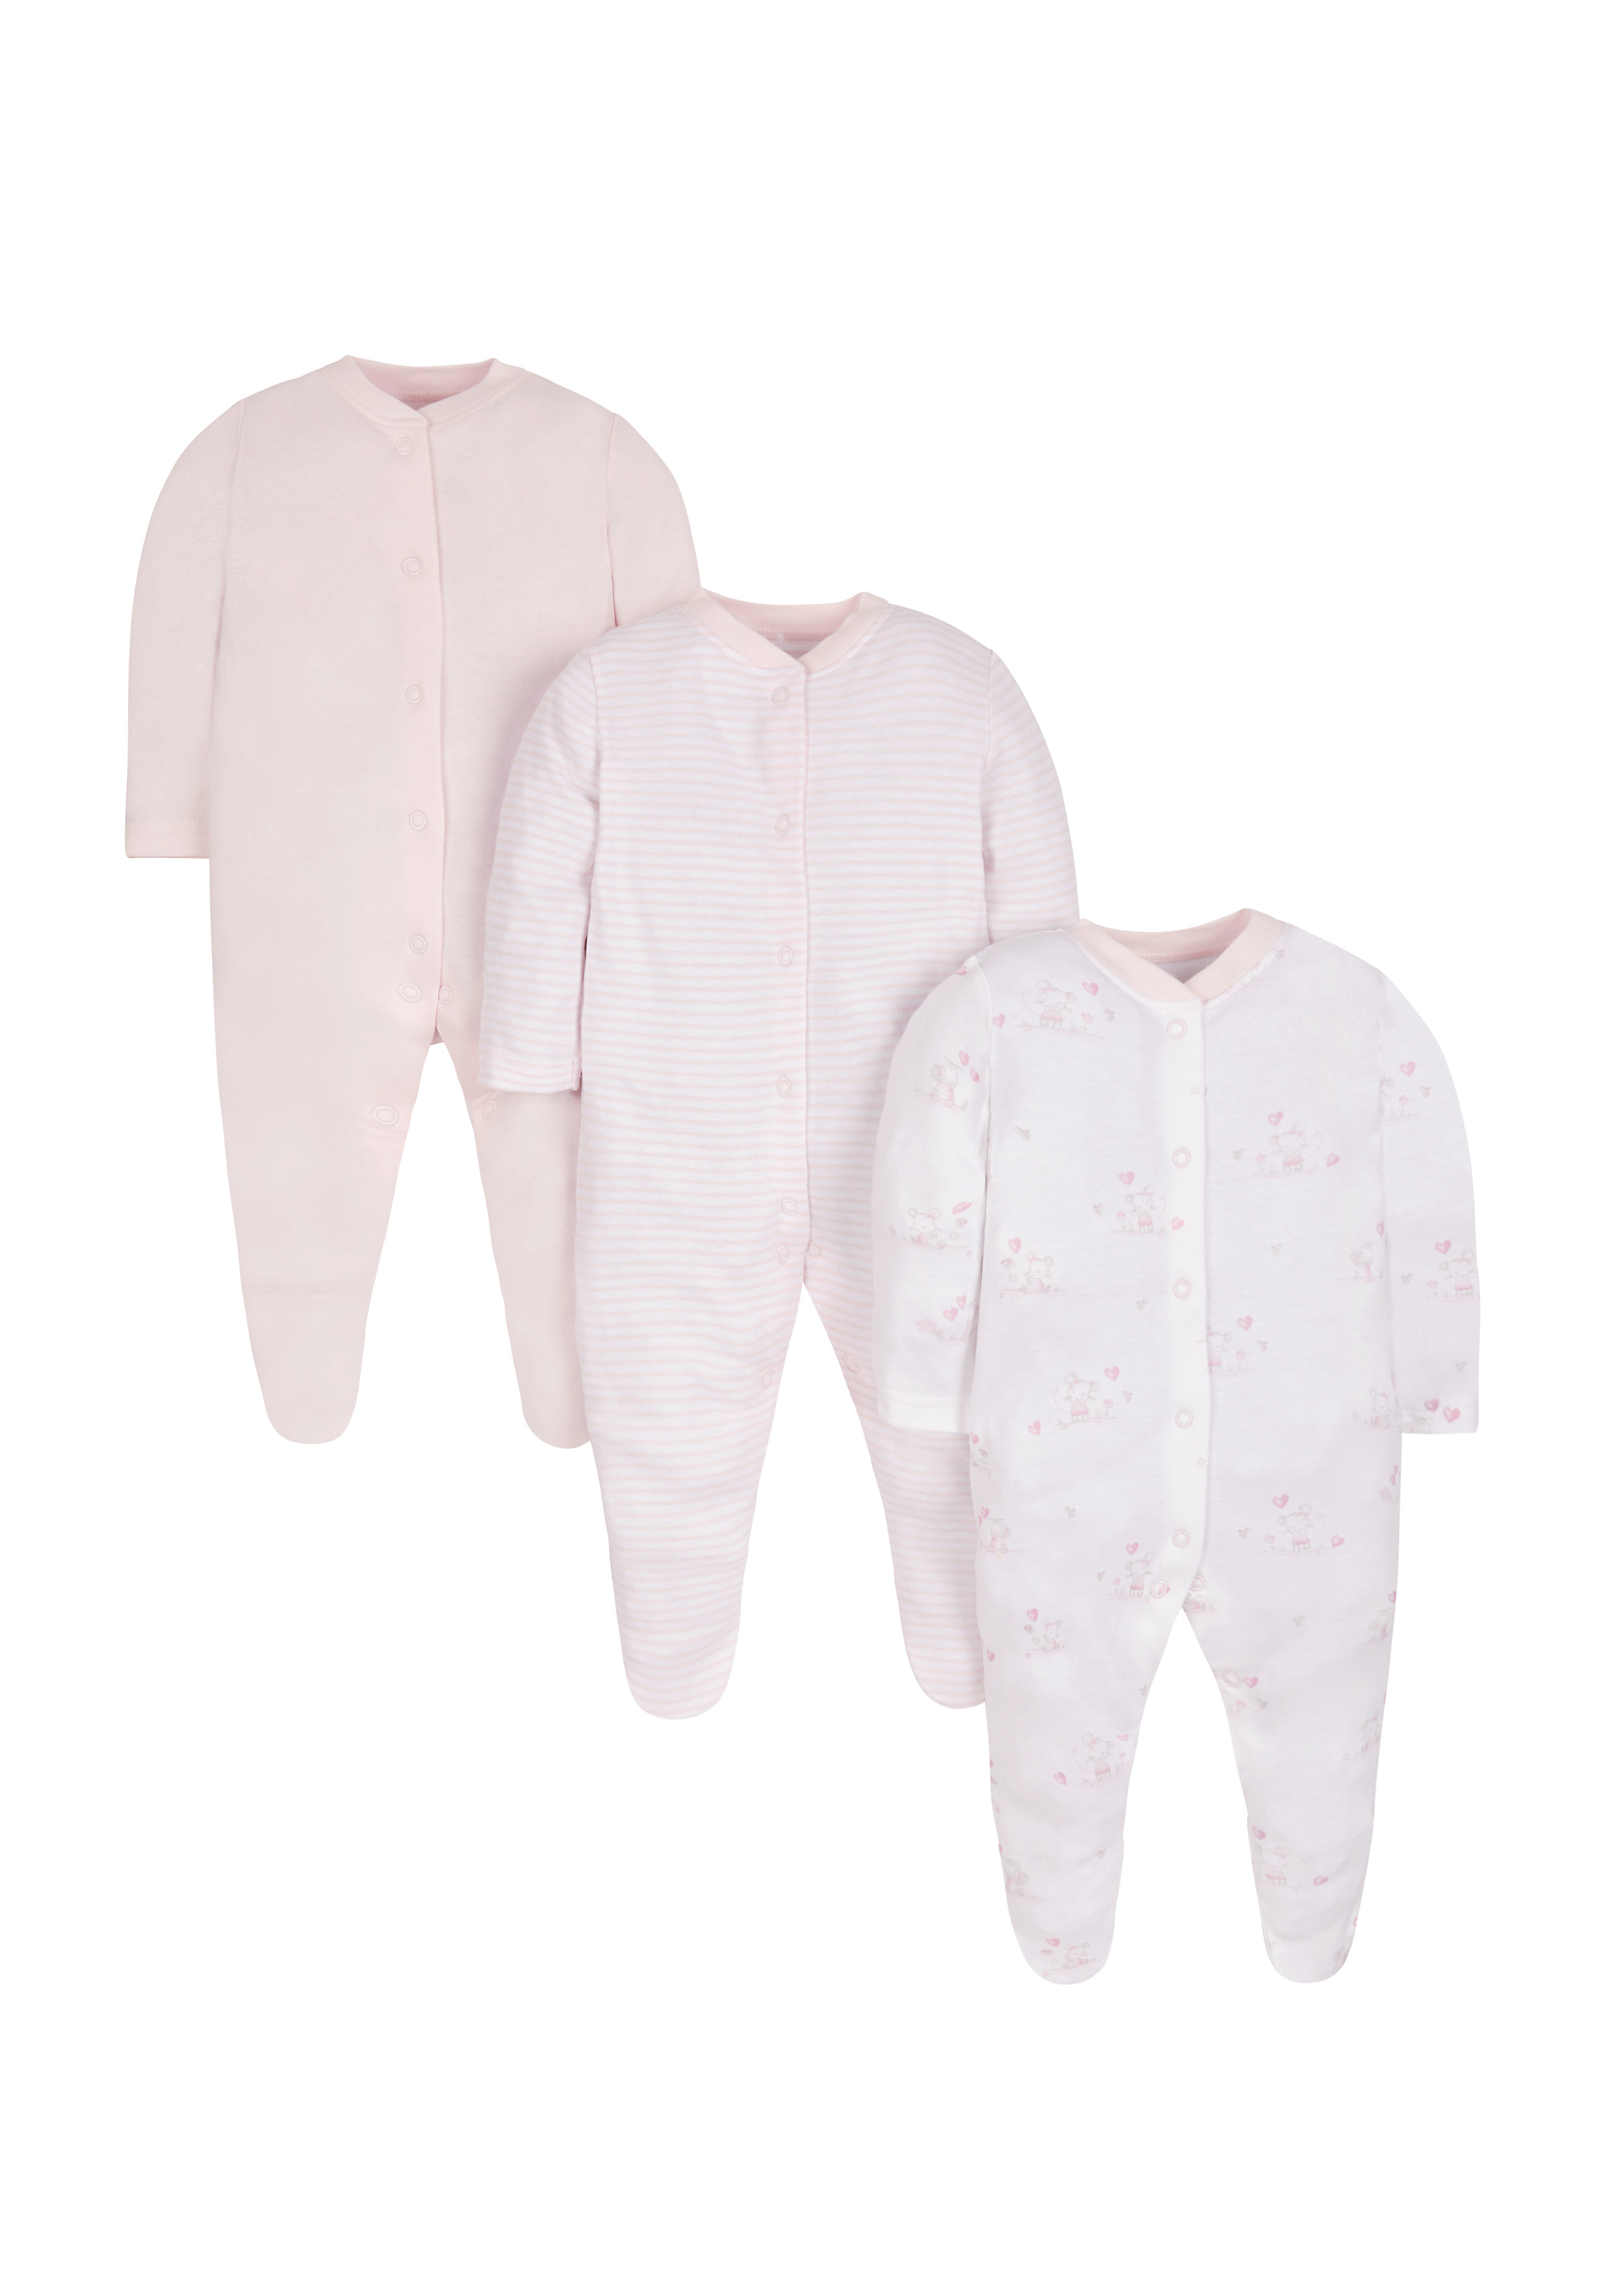 Mothercare | Girls Sleepsuits - Pack Of 3 - White Pink